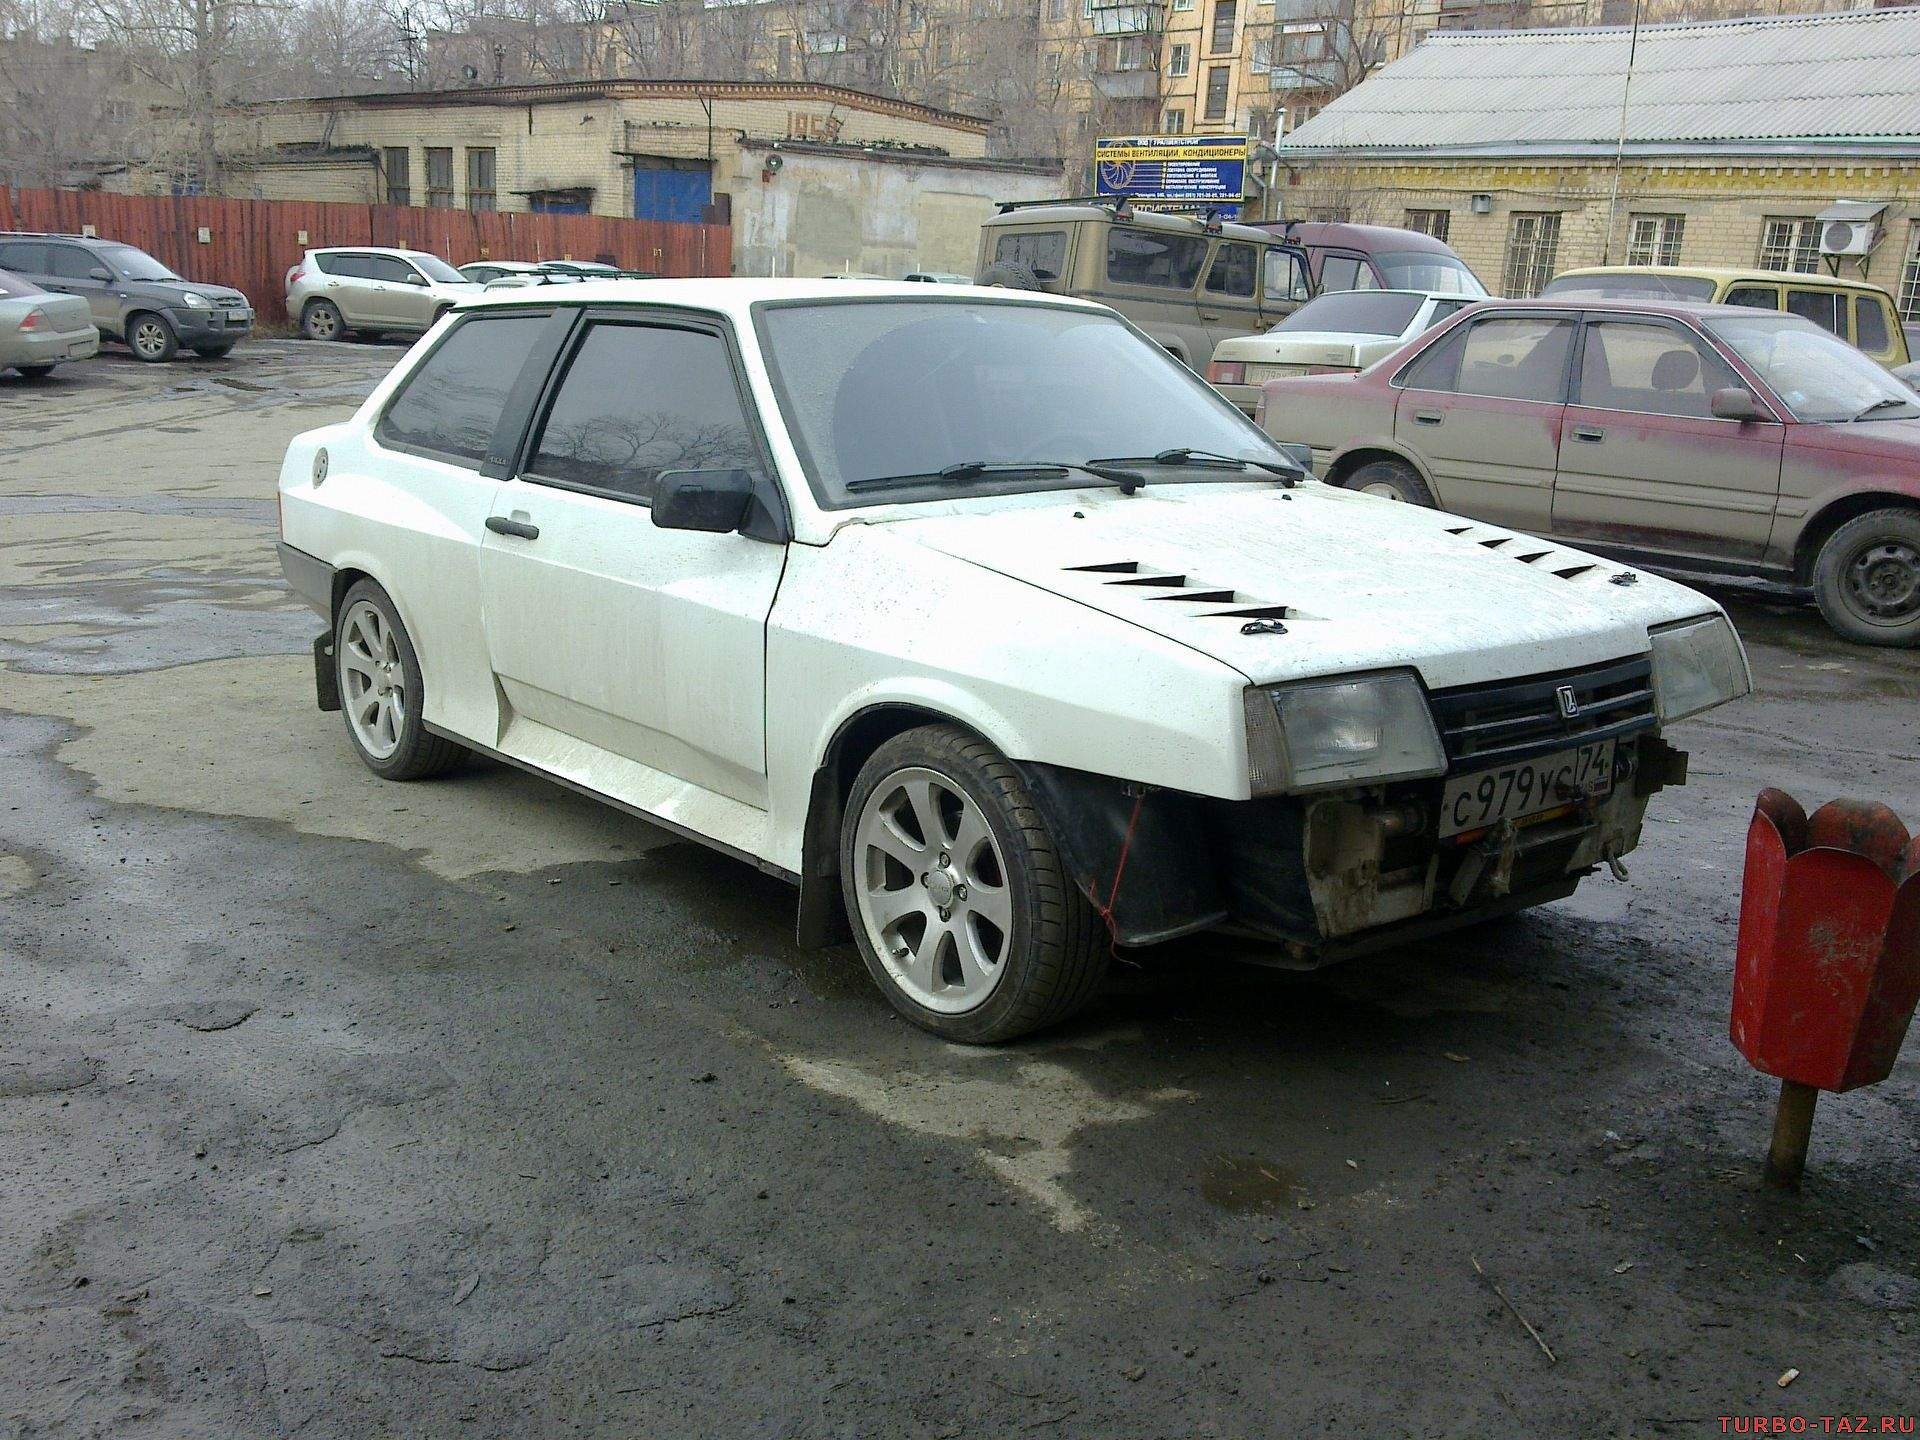 71-lada-21099-lambo-kupe-turbo-5_big